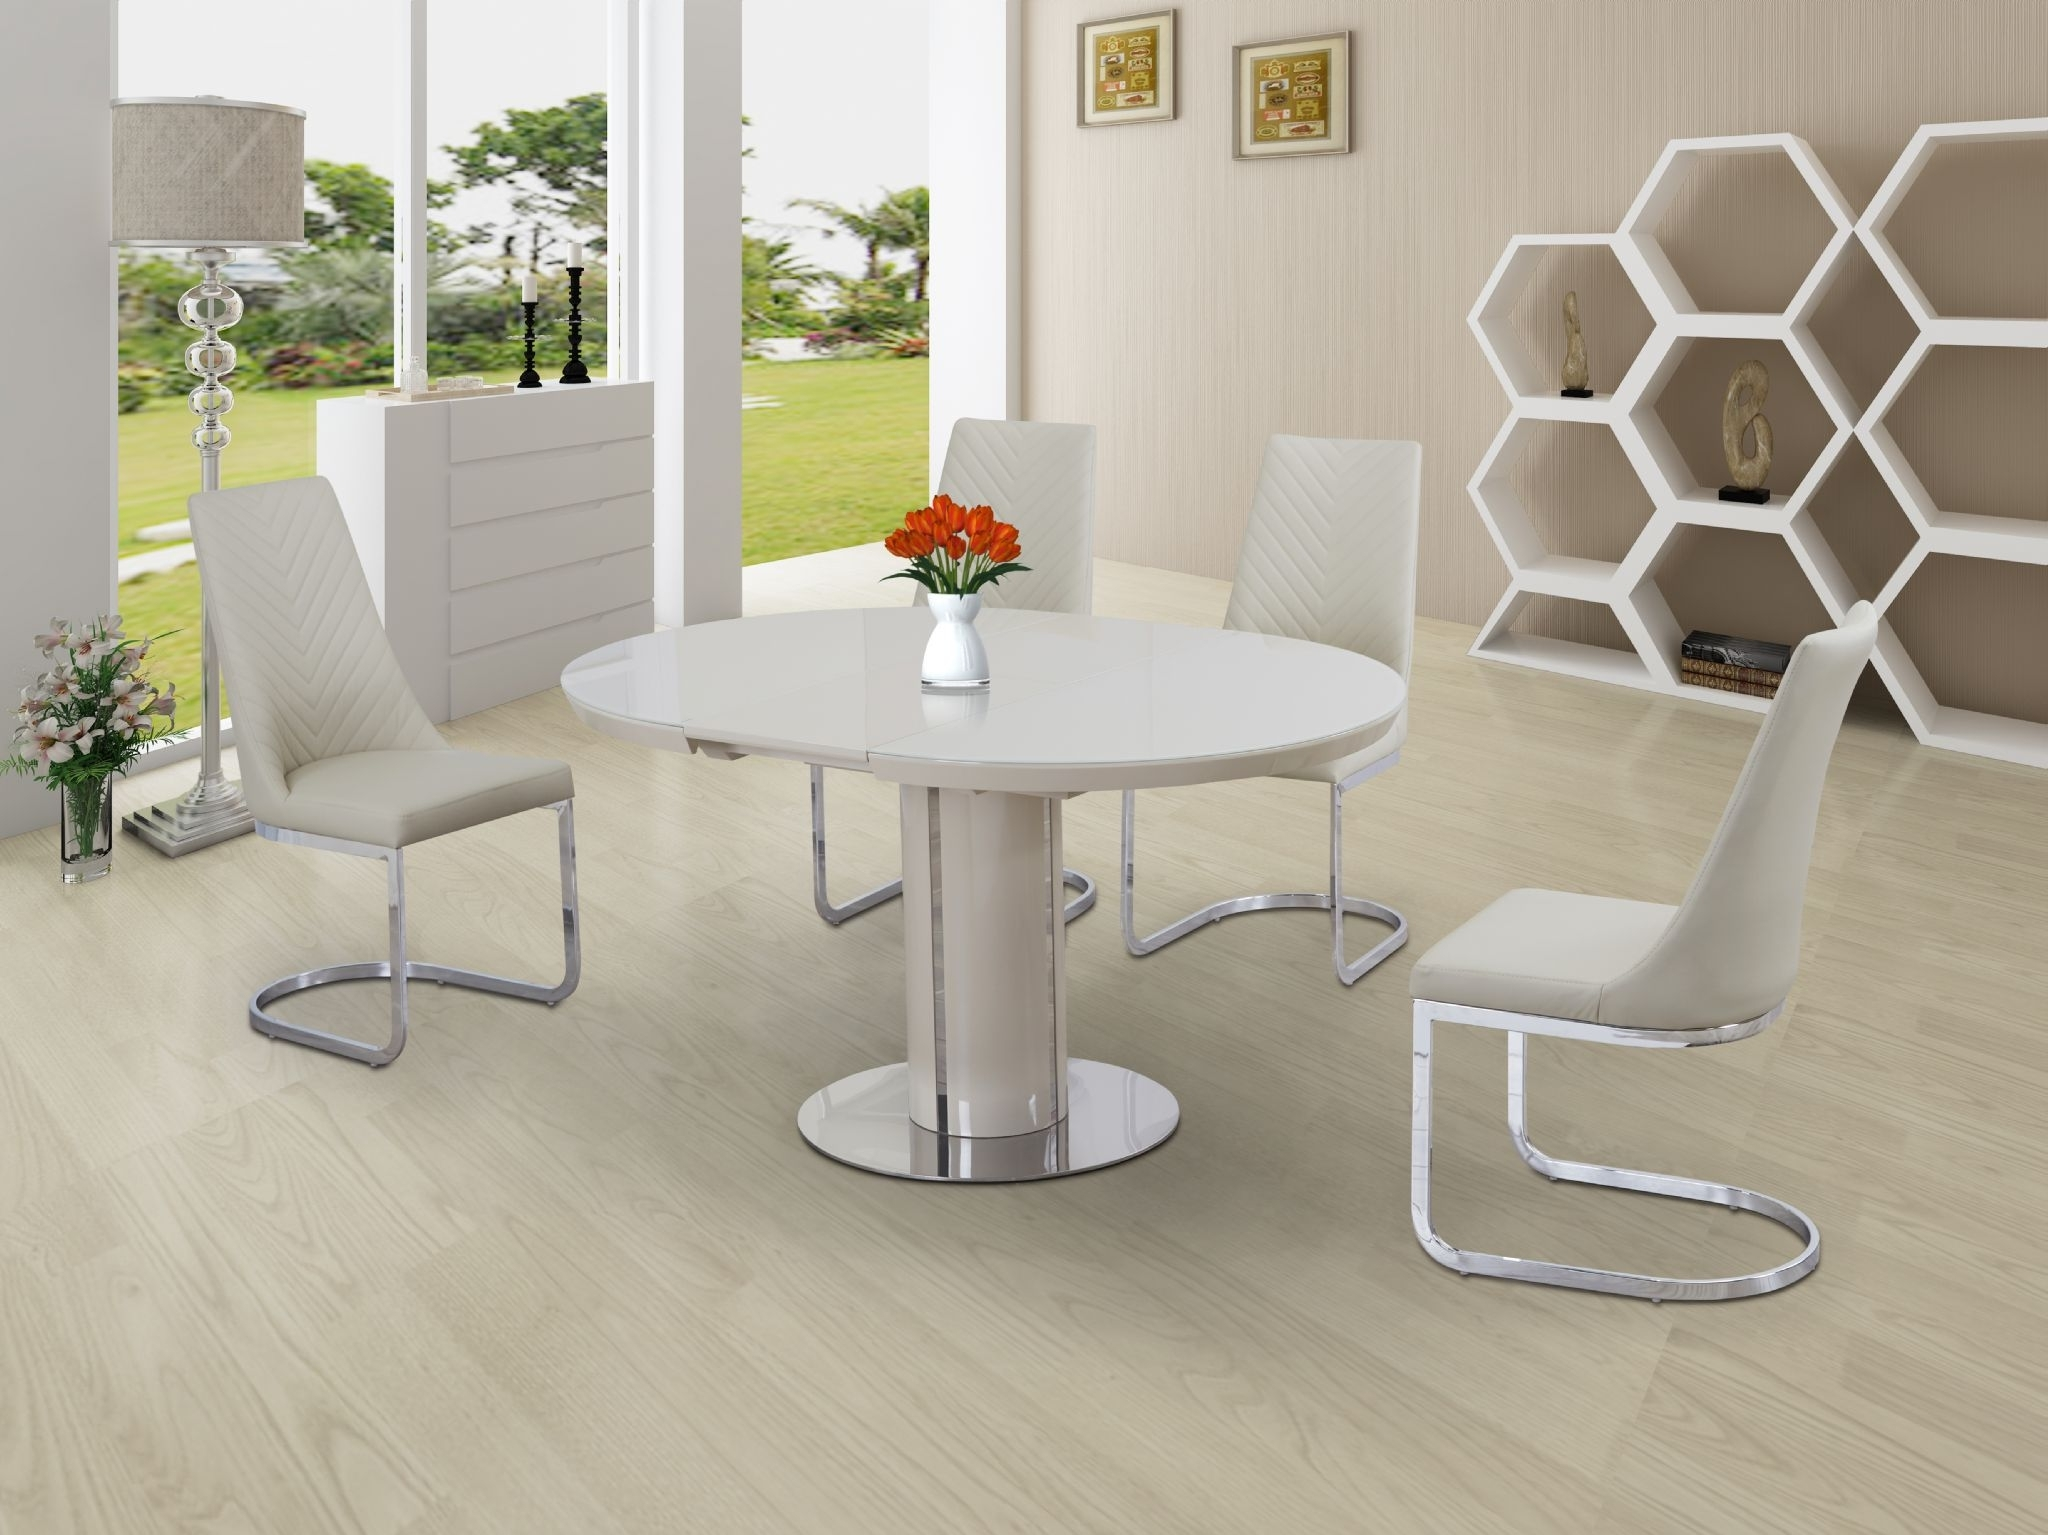 Eclipse Round Oval Gloss & Glass Extending 110 To 145 Cm Dining Throughout Trendy Round Extending Dining Tables (Gallery 16 of 25)